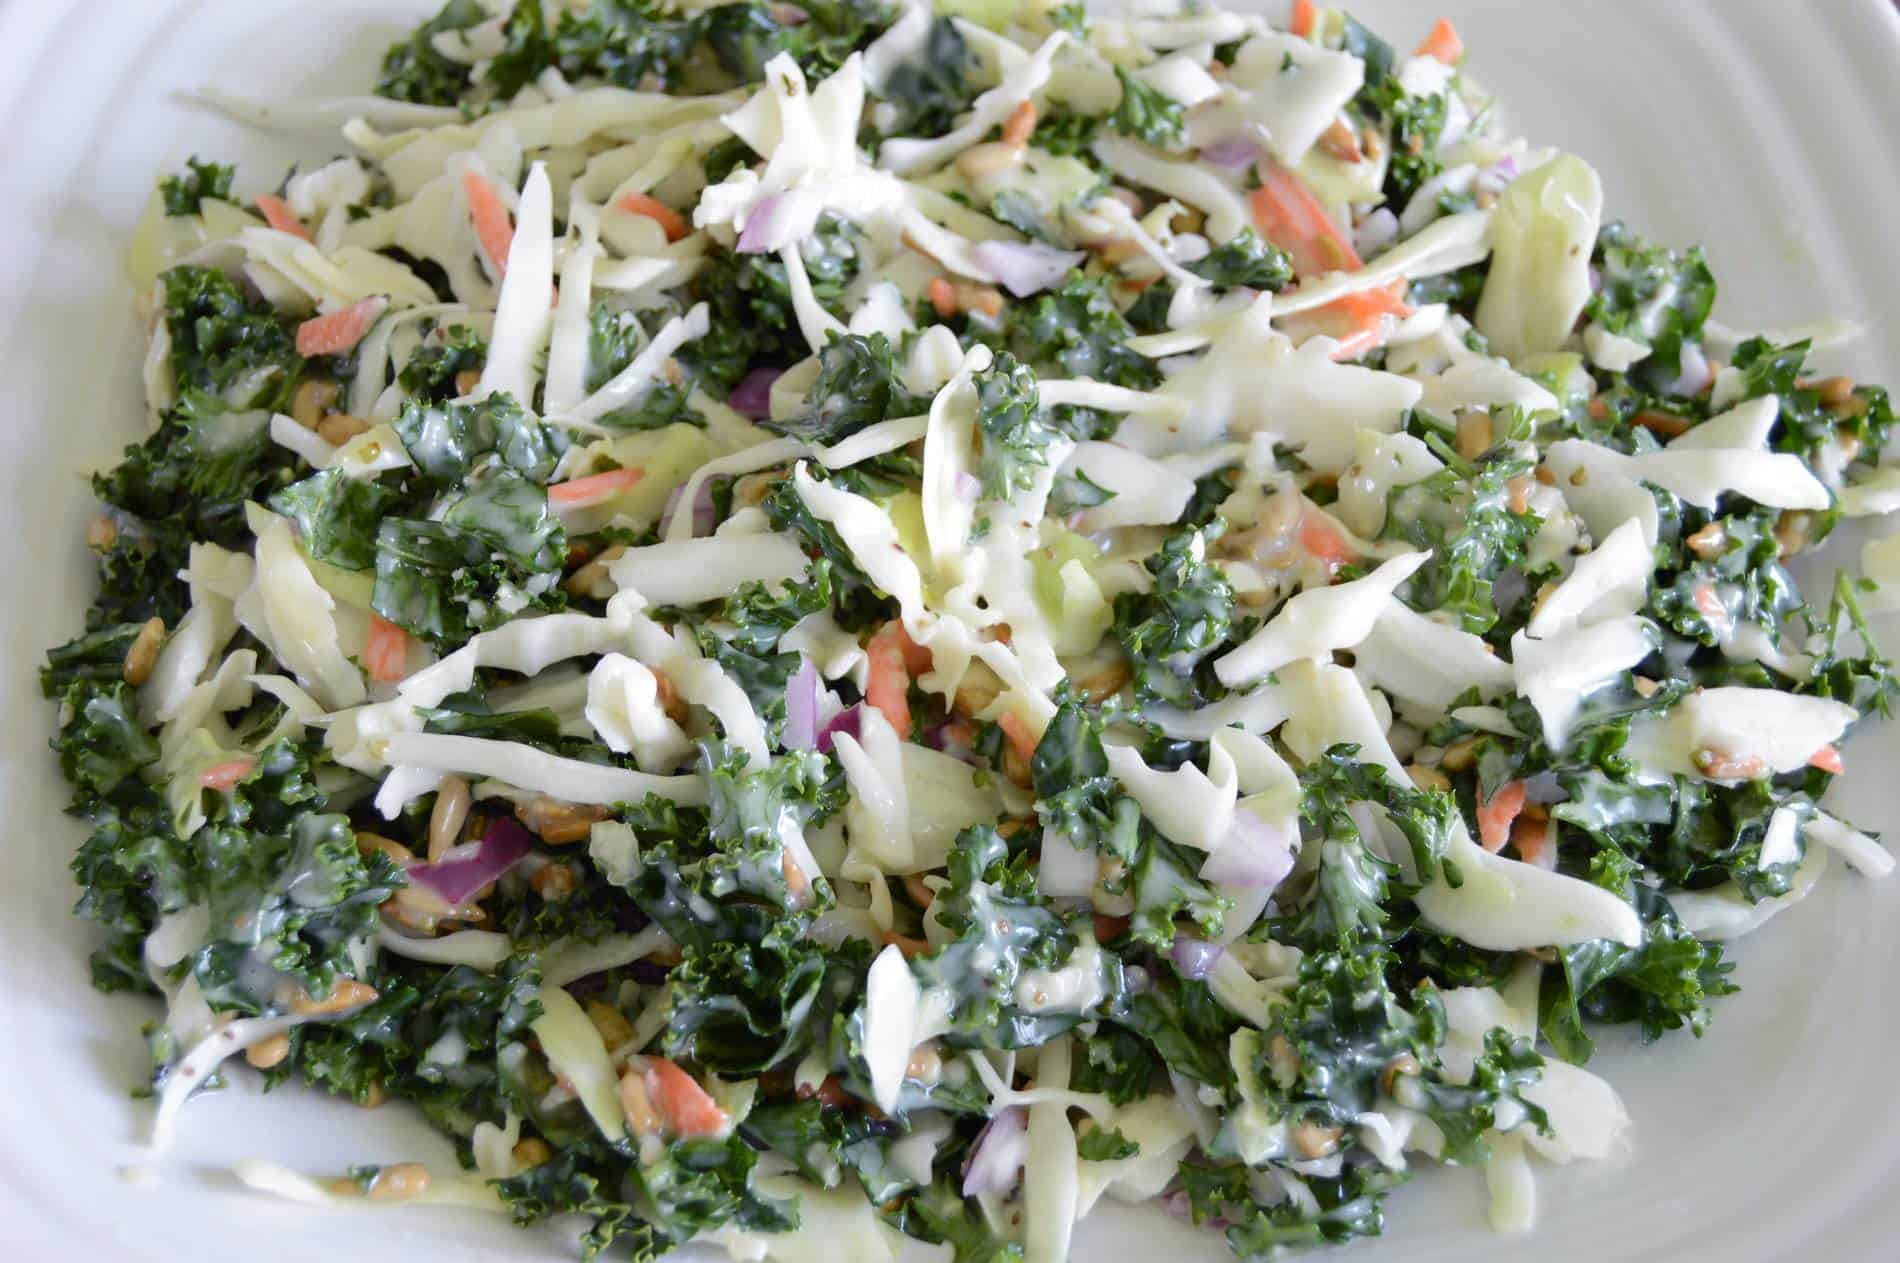 Kale, cabbage salad with carrots, red onion, hemp seeds, sunflower seeds and Jimmy's Cole Slaw Dressing on white plate